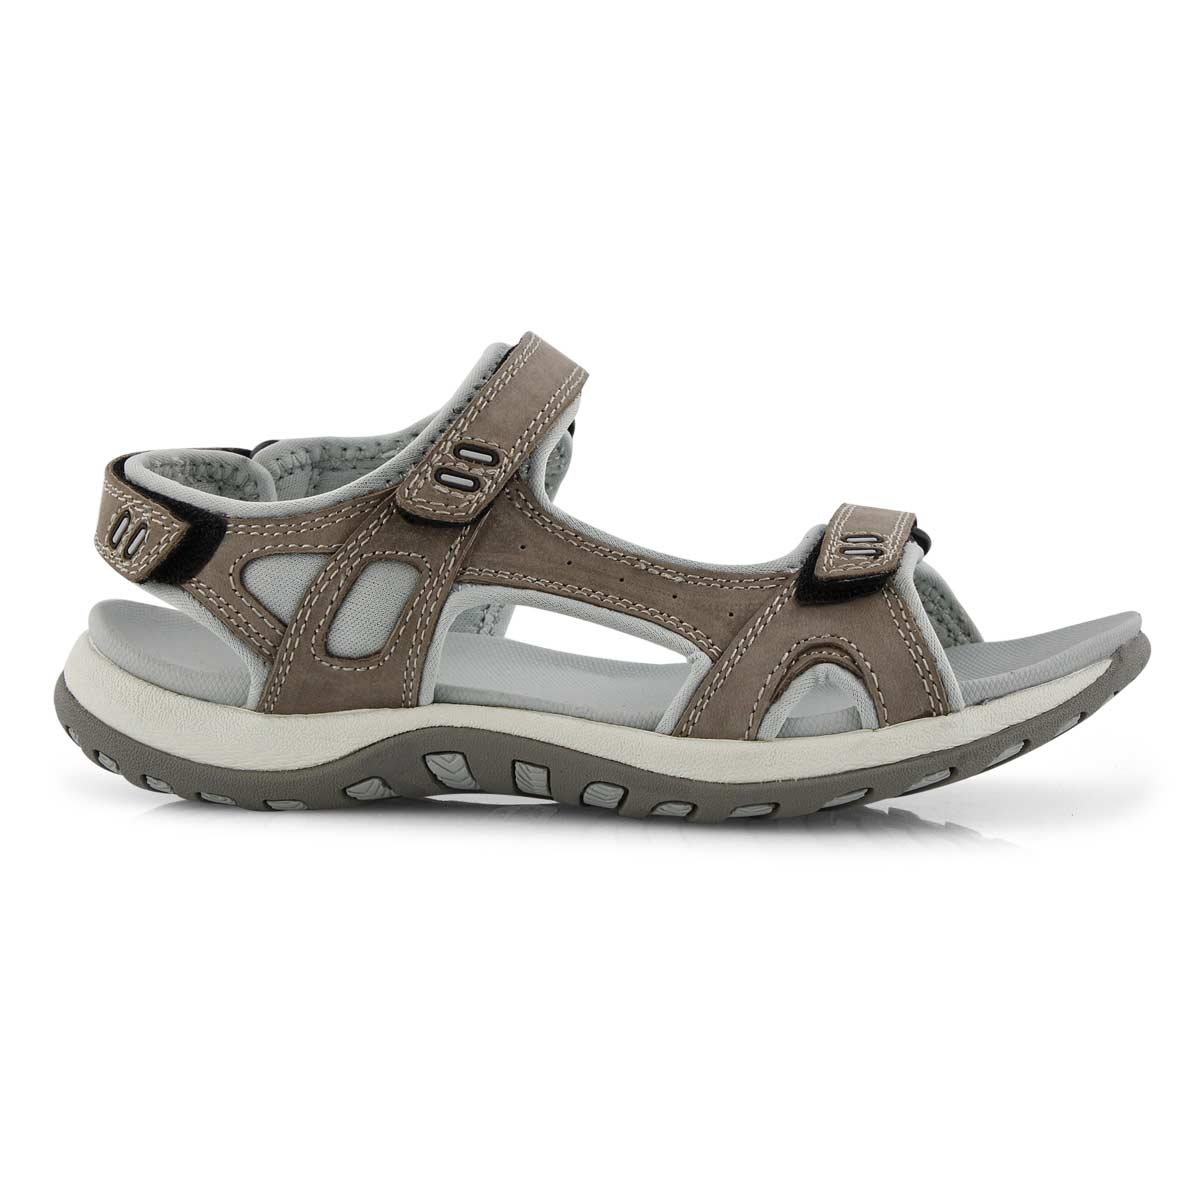 Lds Courtney 2 grey 3 strap sport sandal